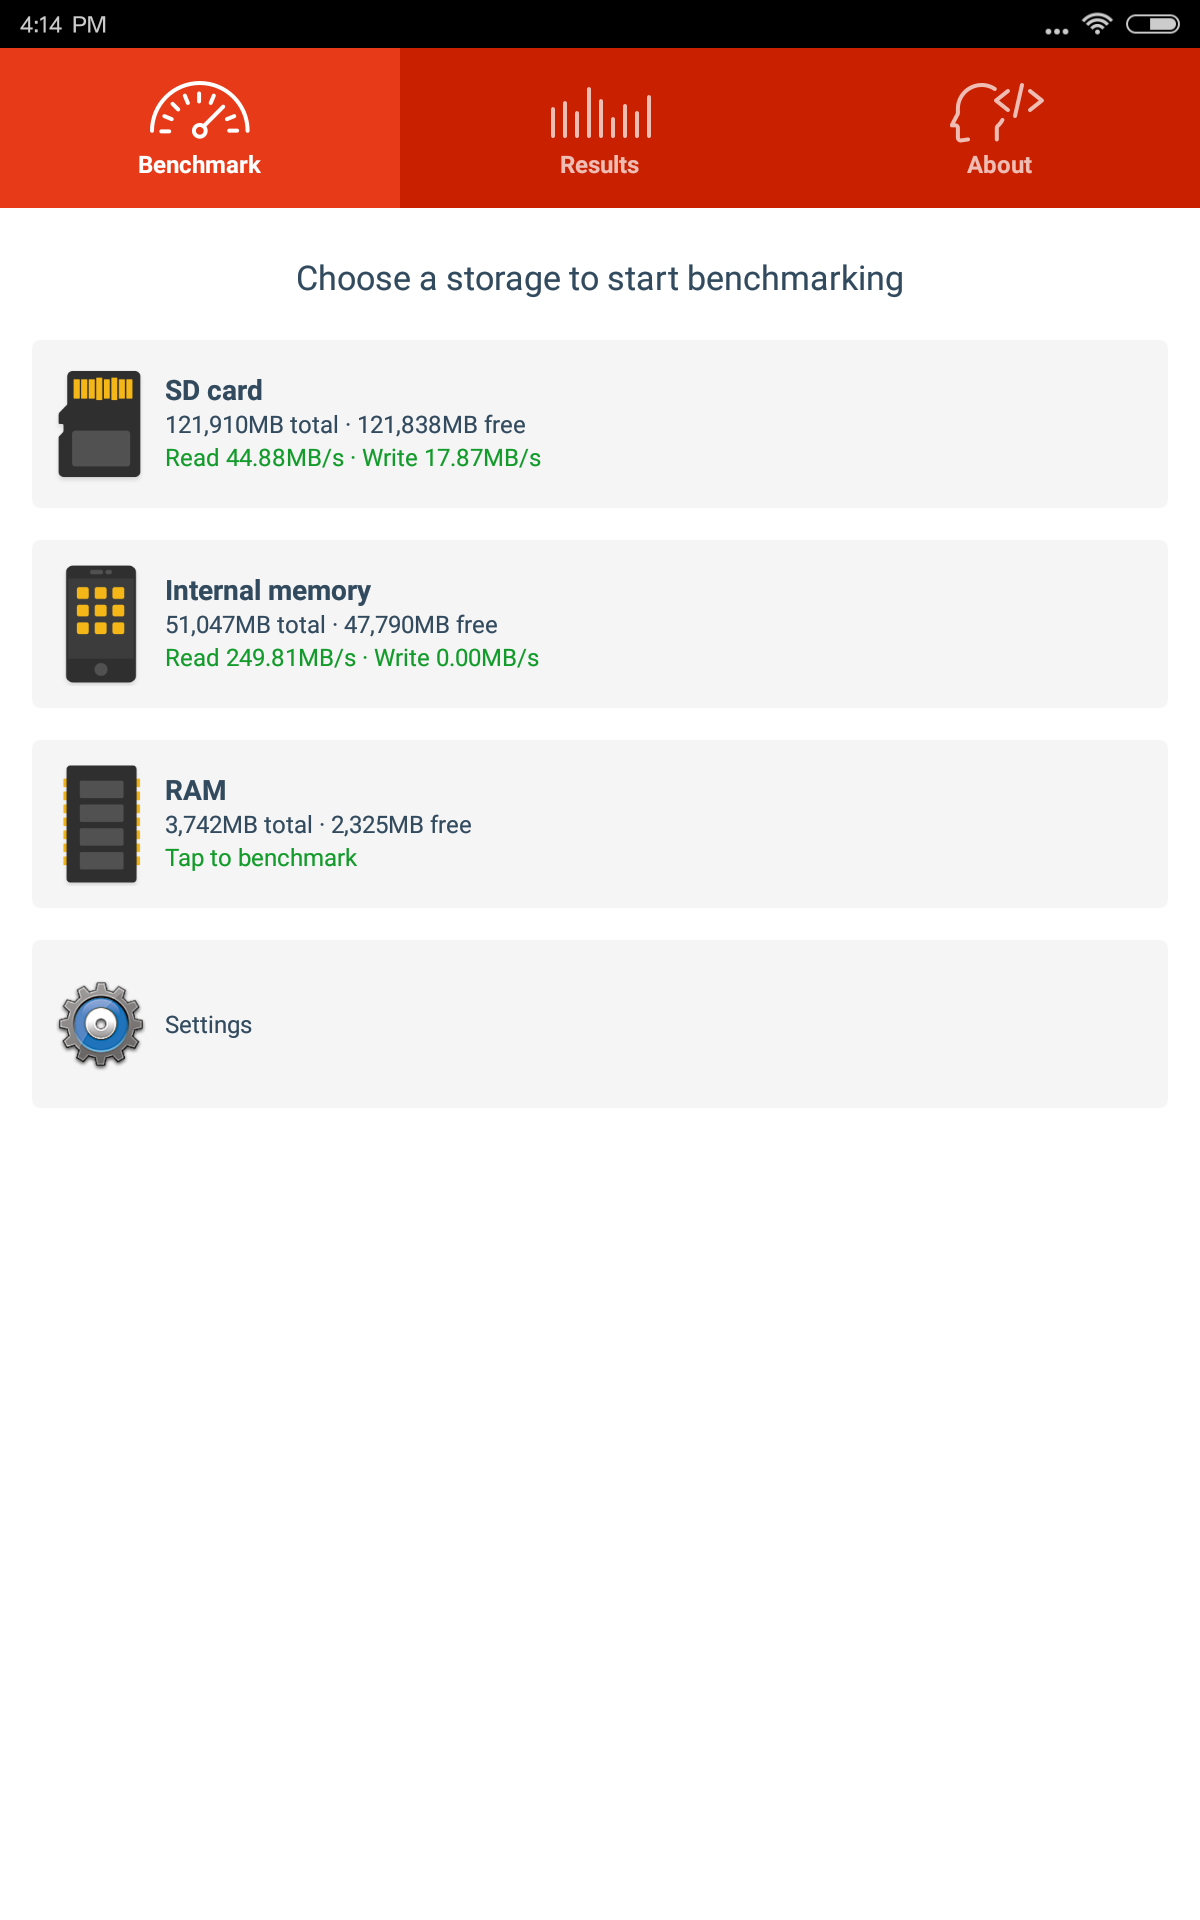 Xiaomi Mi Pad 4 Testbericht 8 Zoll Tablet MIUI Android Benchmarks 9